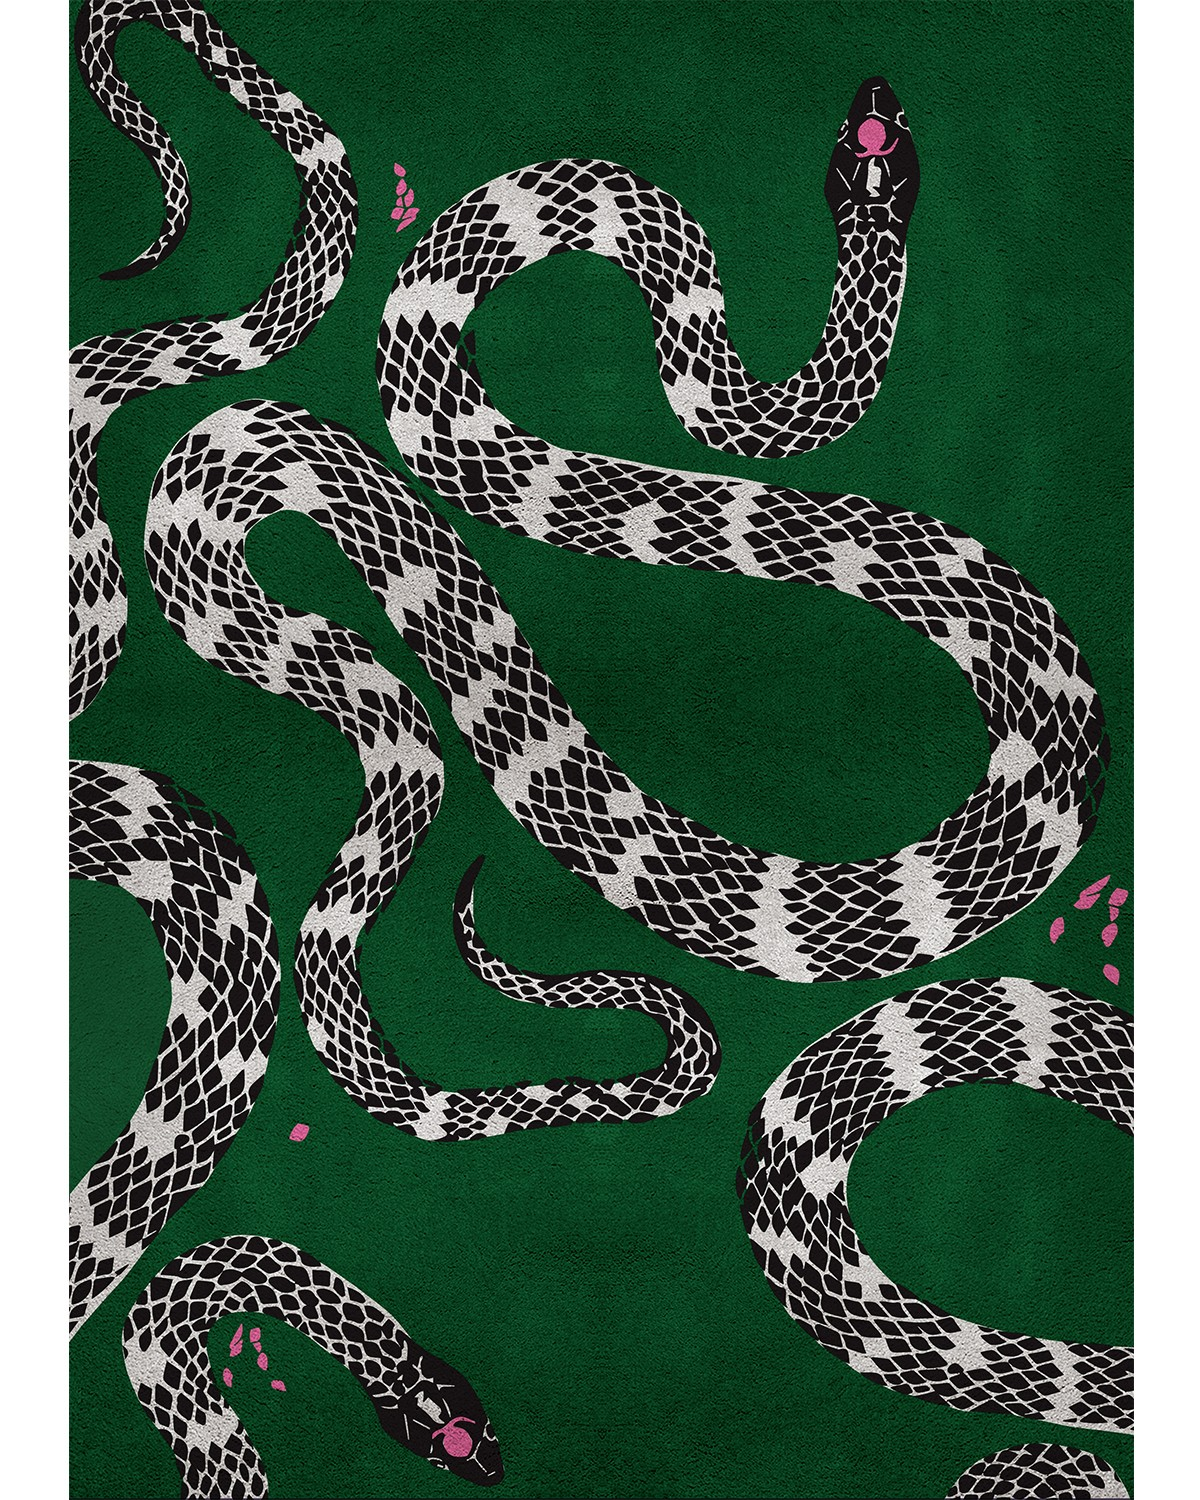 dining room rugs Top Dining Room Rugs You Will Fall In Love With (Part III) snake